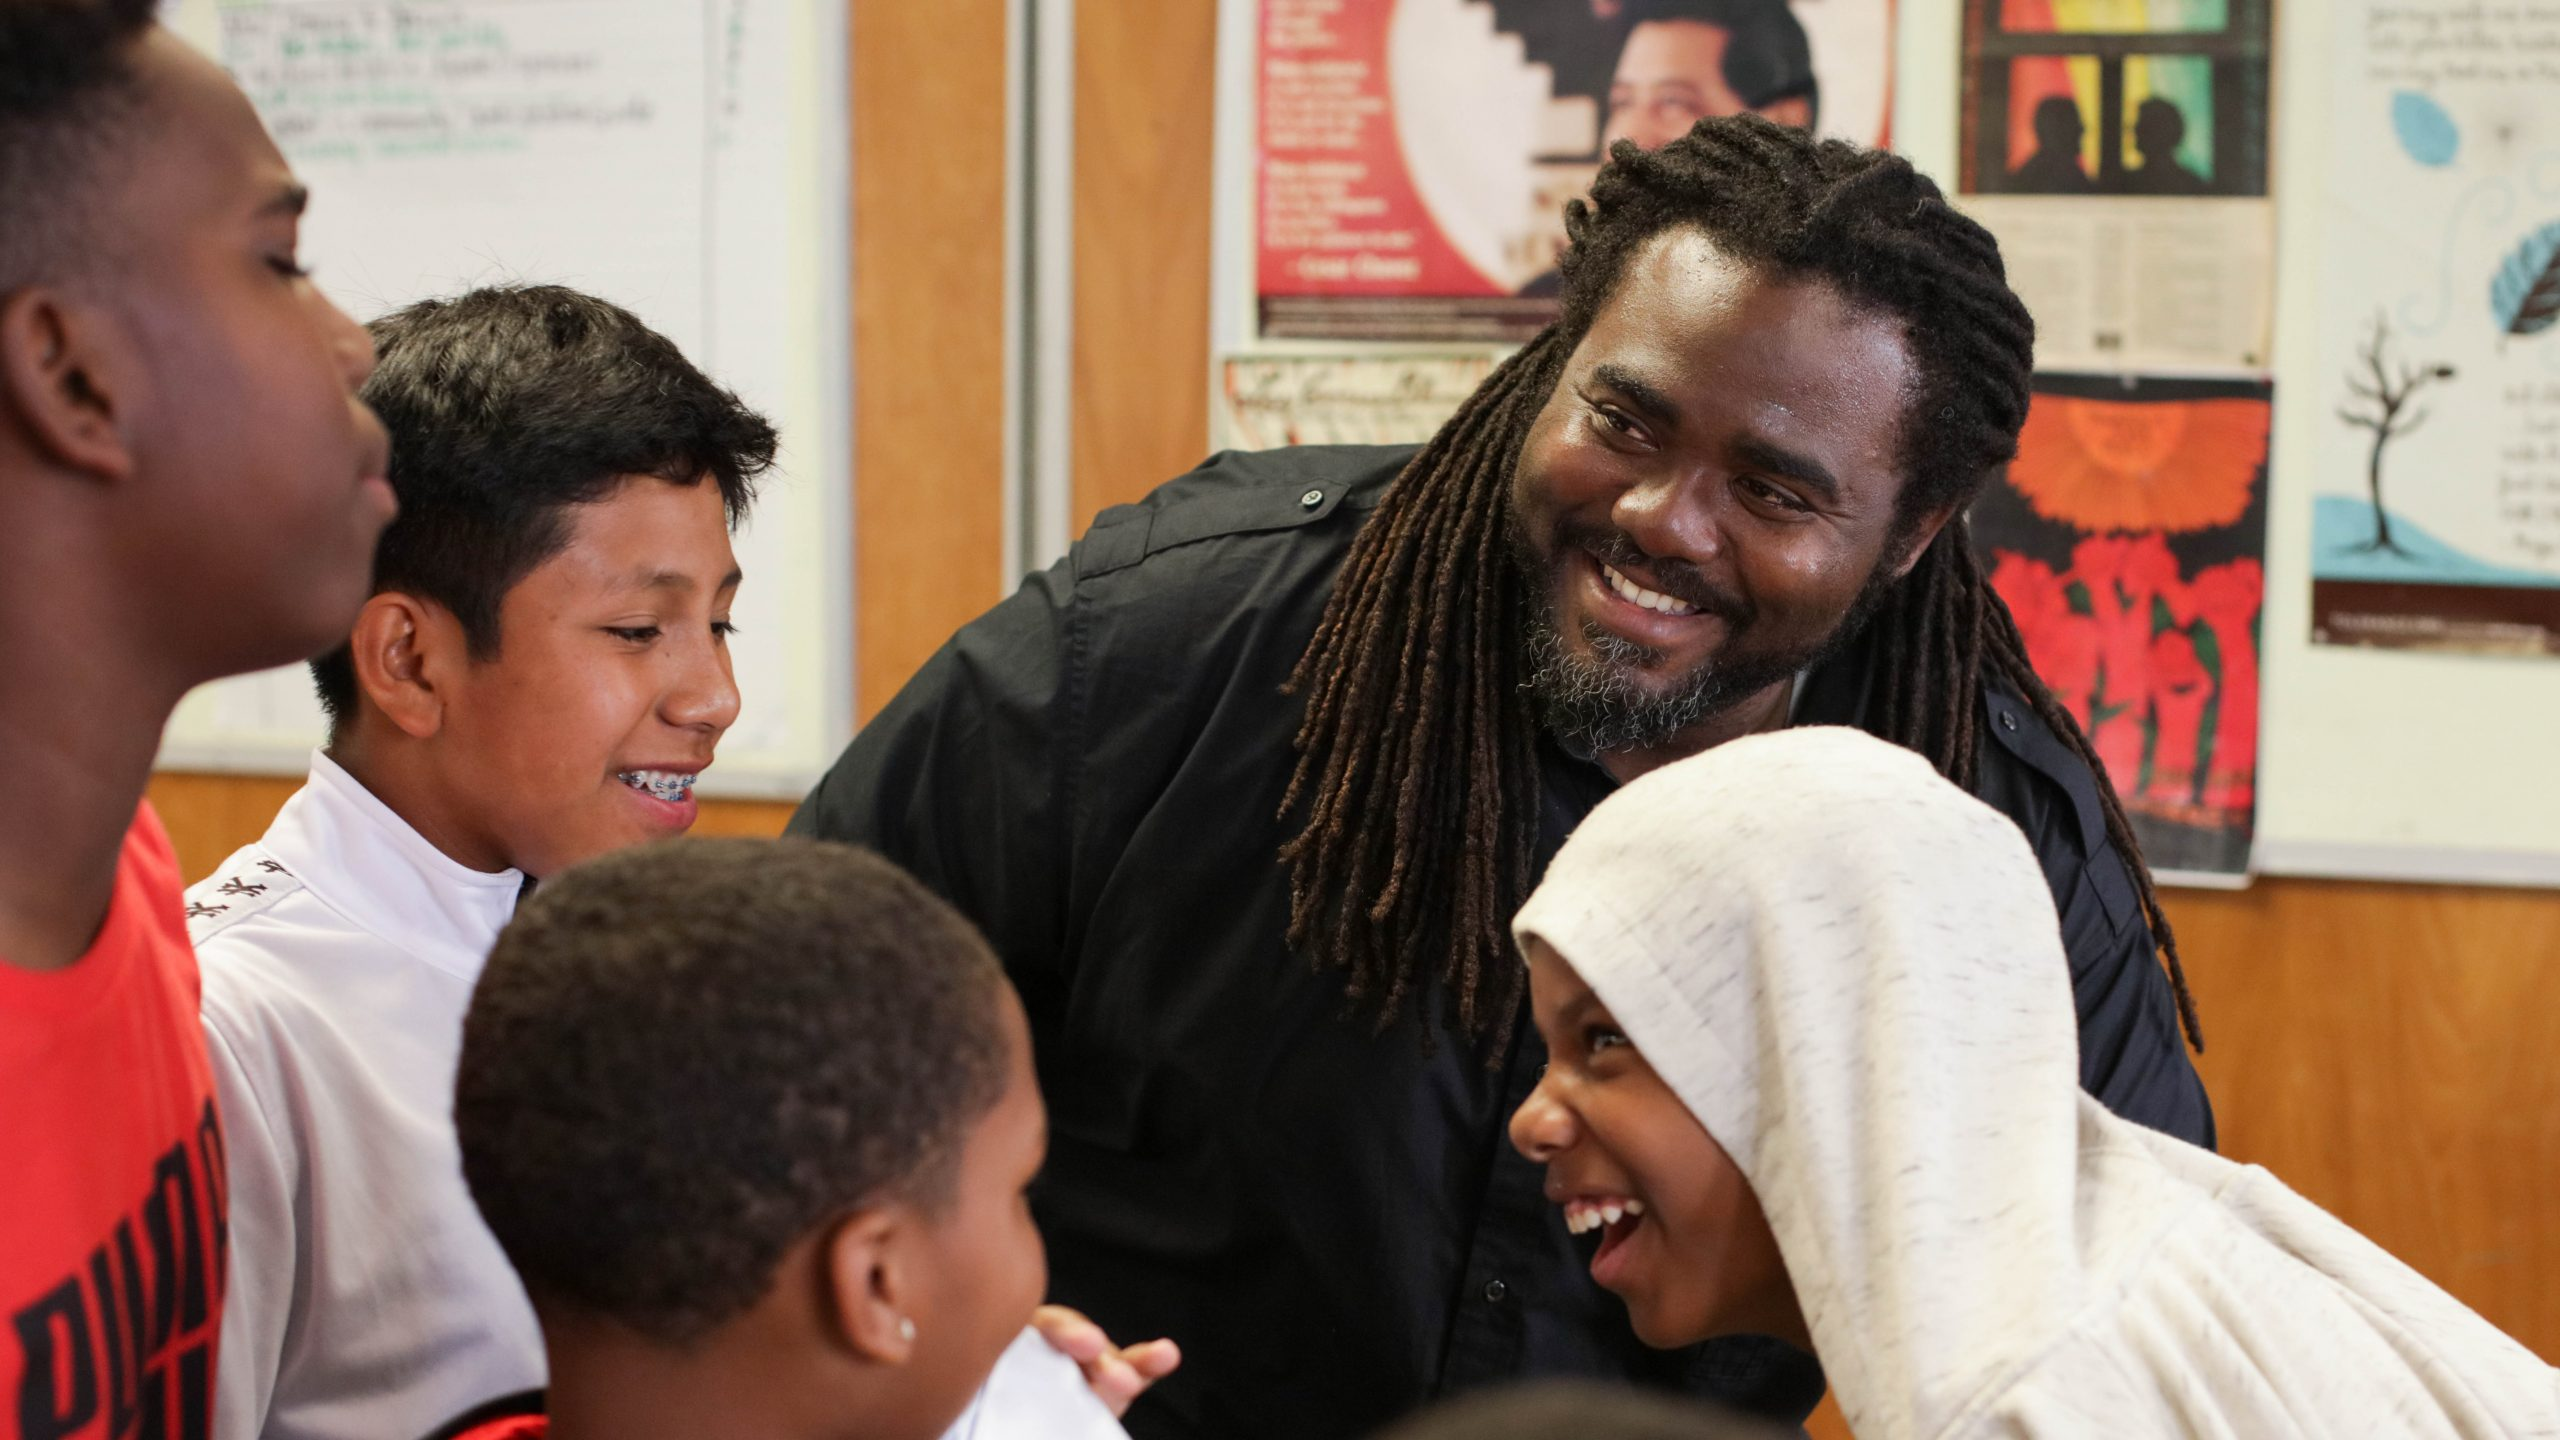 A man smiles at a group of laughing middle school boys